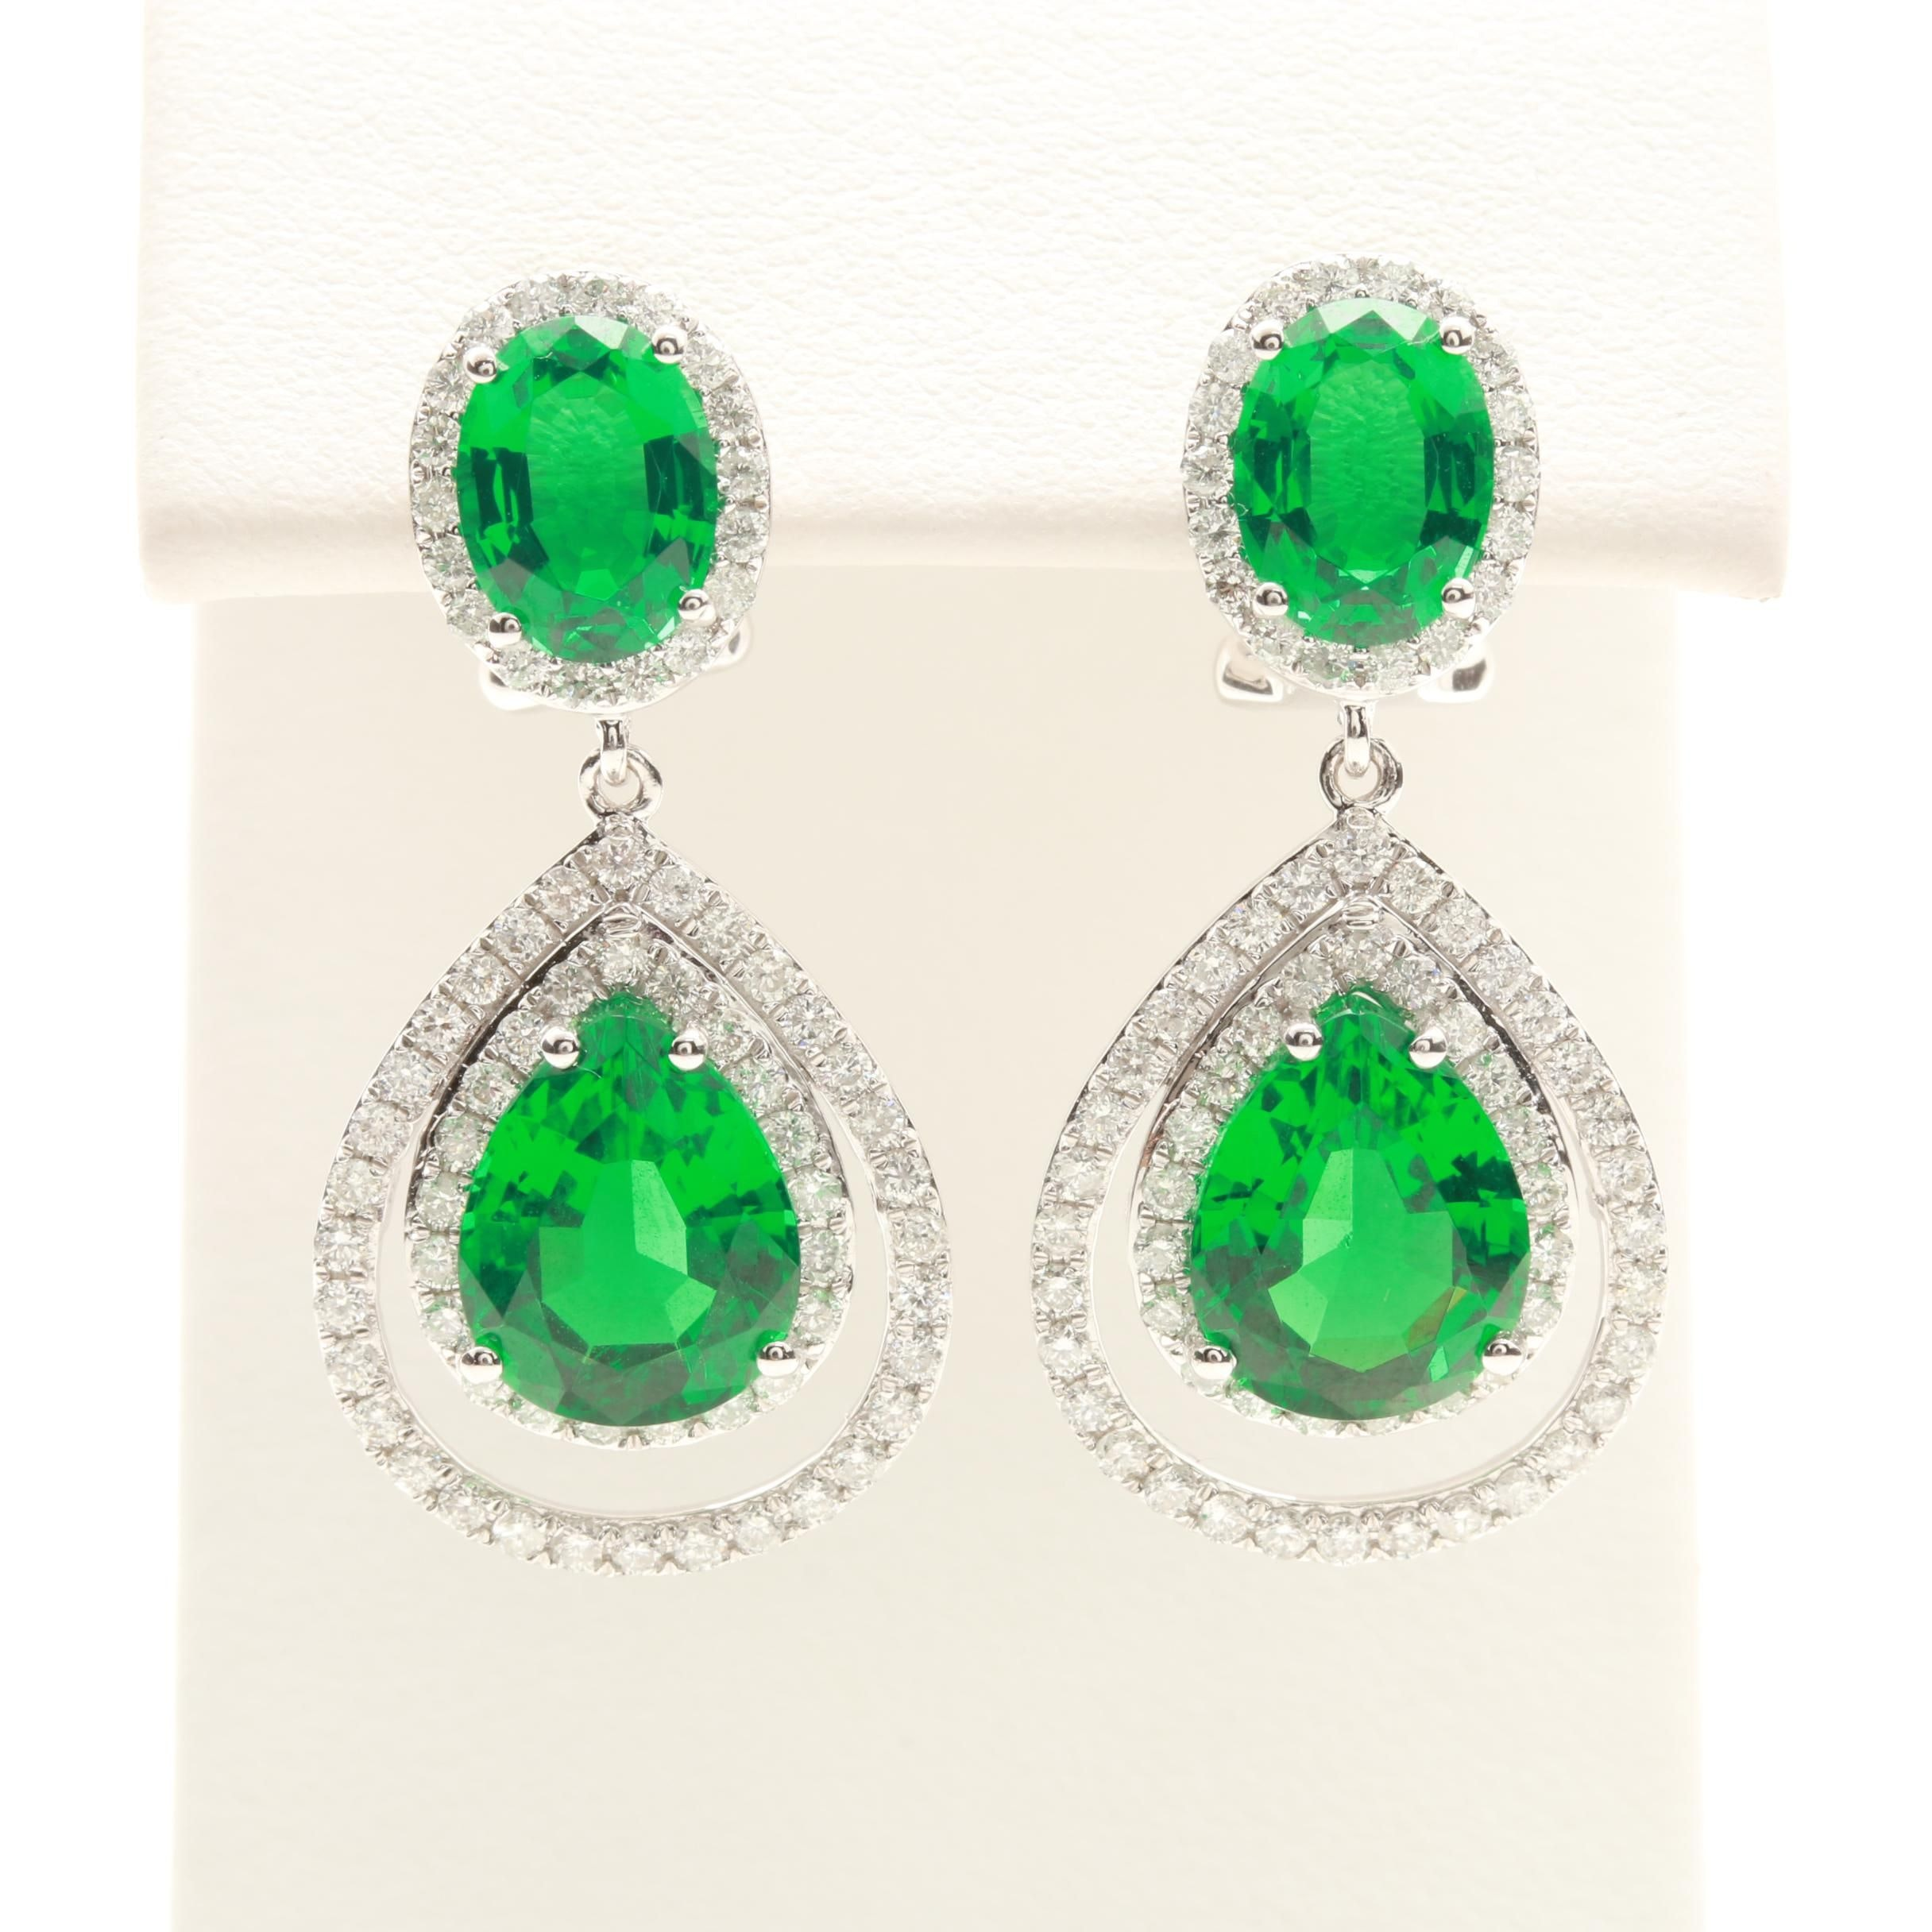 14K White Gold Synthetic Emerald and 1.51 CTW Diamond Earrings